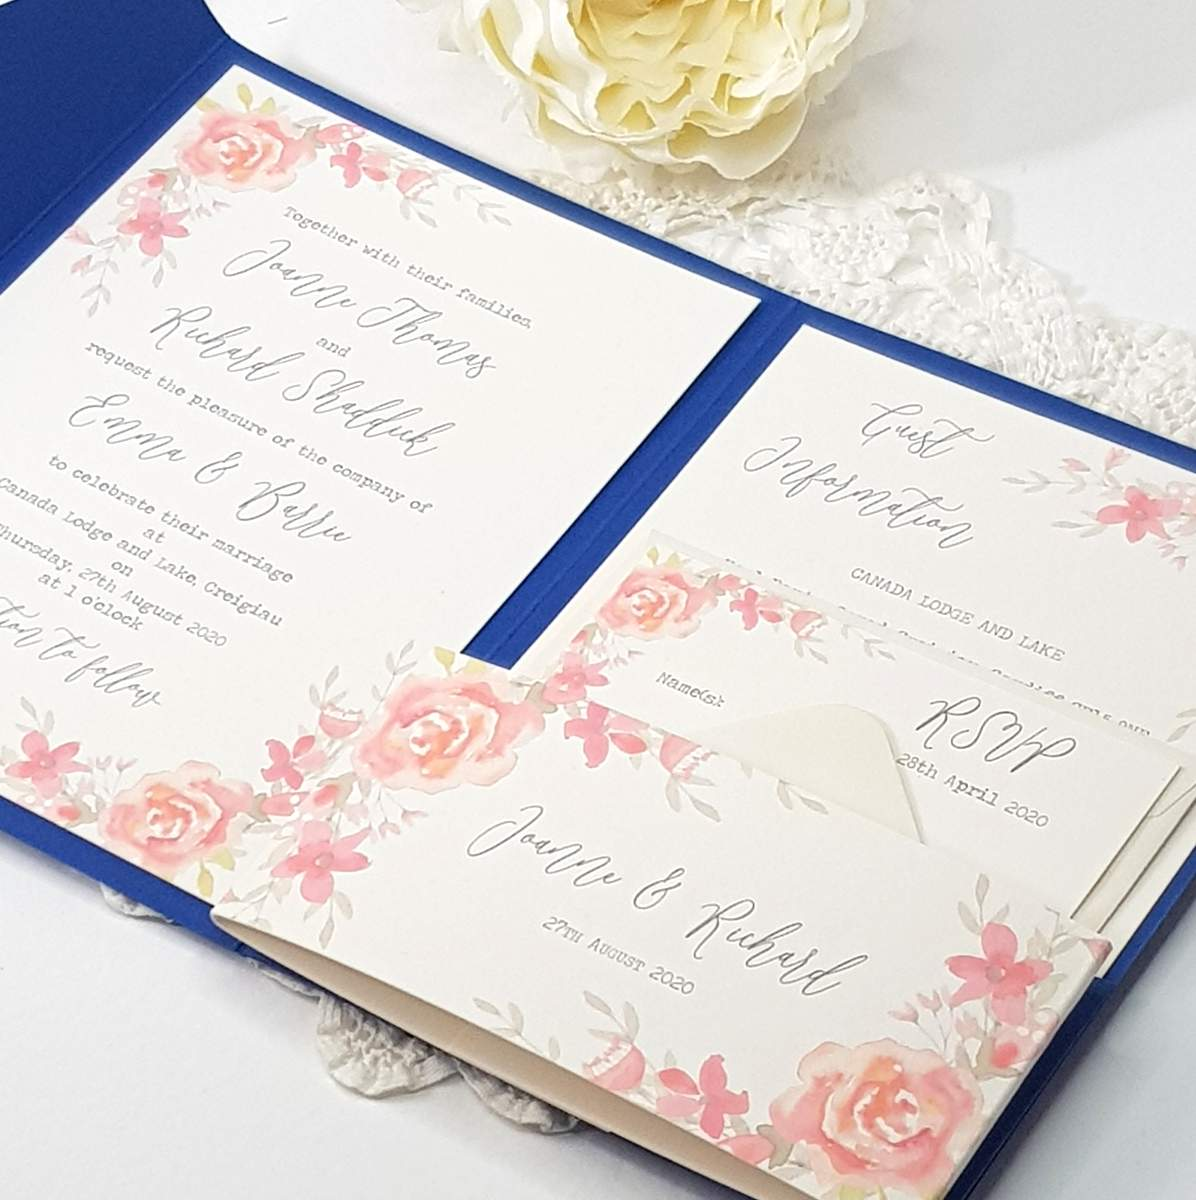 blue pocketfold eco friendly wedding invite with inserts featuring a pink and coral floral design